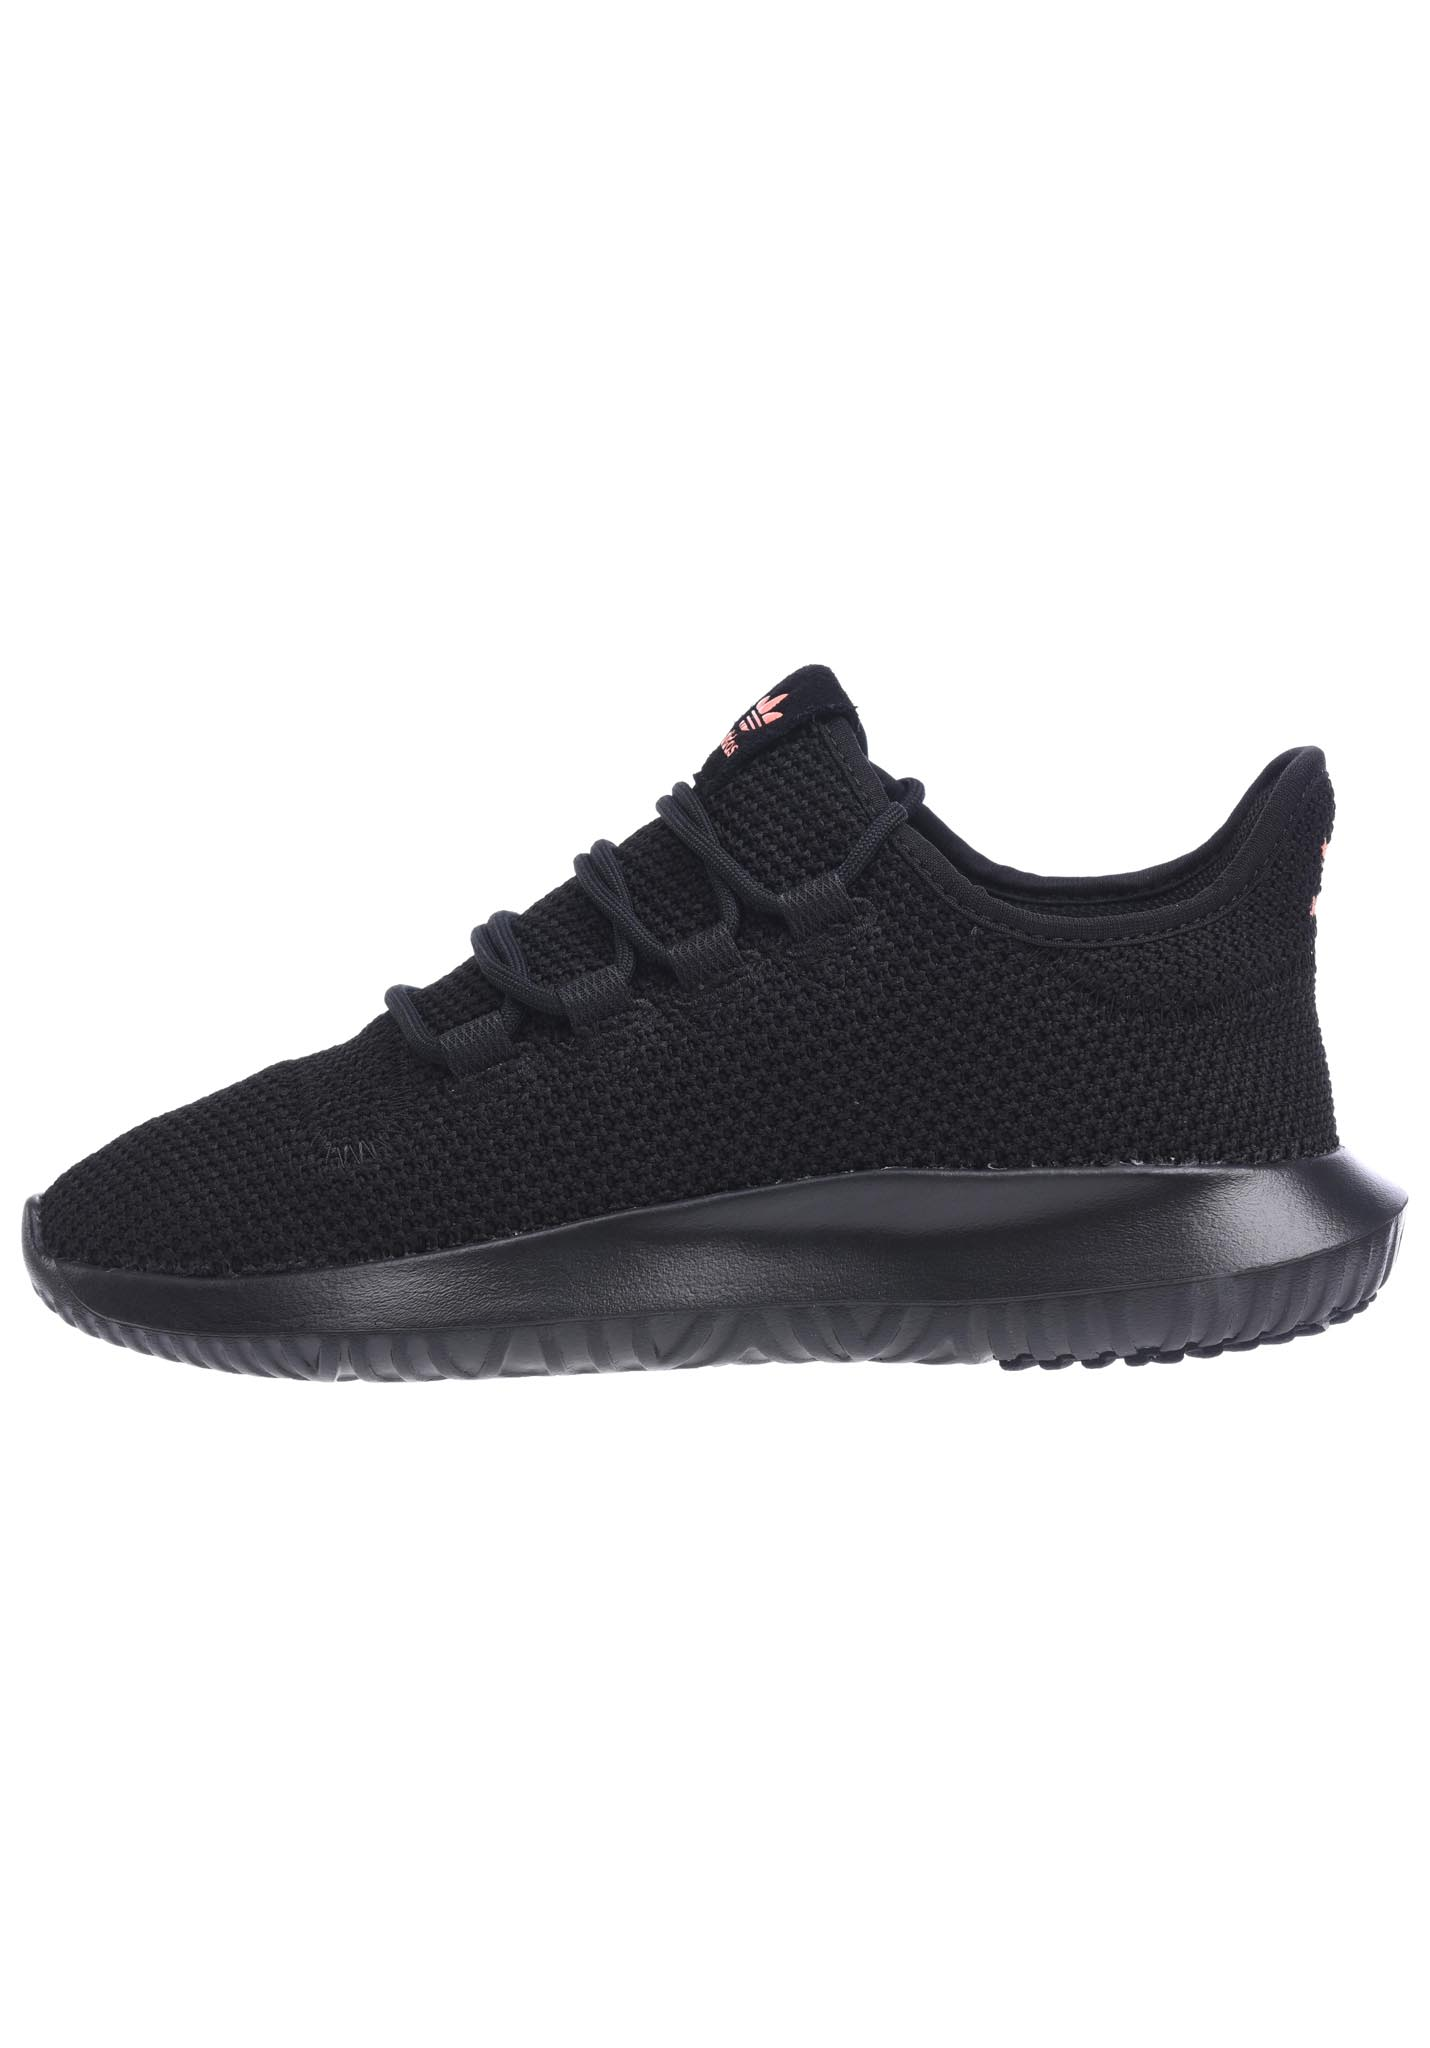 sale retailer 1e109 e4c32 ADIDAS ORIGINALS Tubular Shadow - Sneakers for Women - Black - Planet Sports